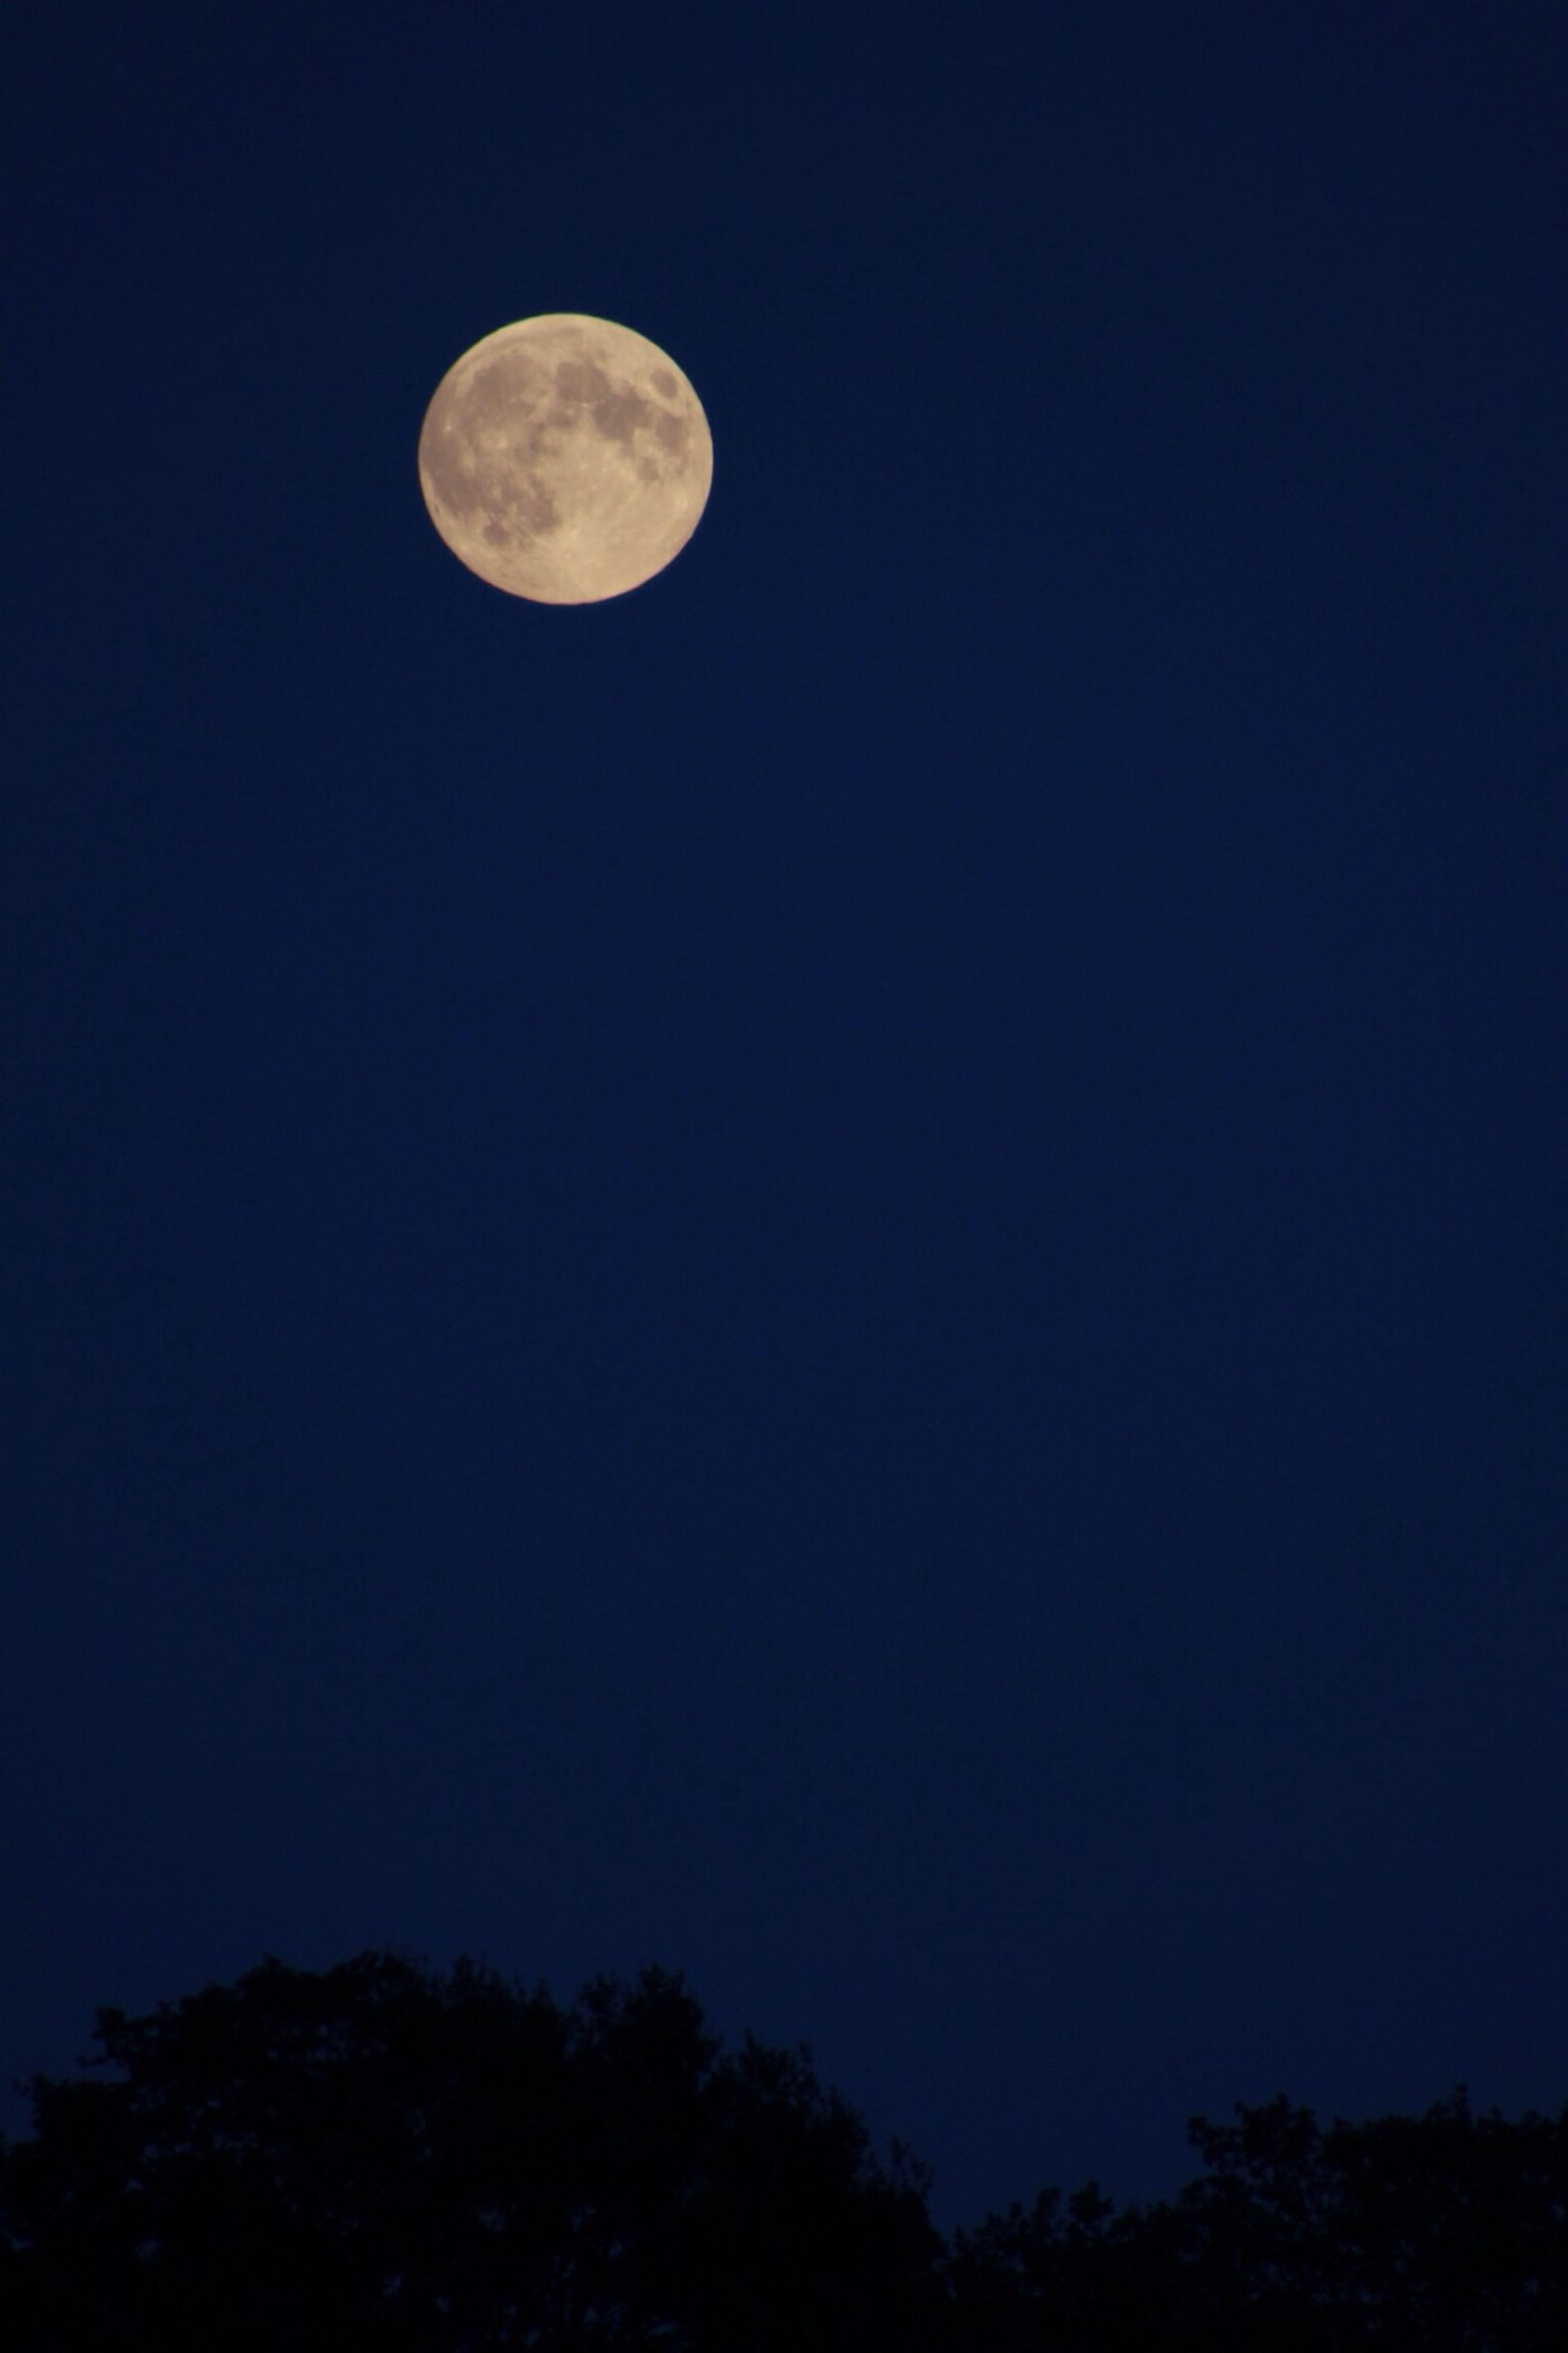 moon, low angle view, night, astronomy, full moon, clear sky, beauty in nature, scenics, copy space, tranquility, tranquil scene, planetary moon, sky, nature, blue, space exploration, circle, silhouette, idyllic, majestic